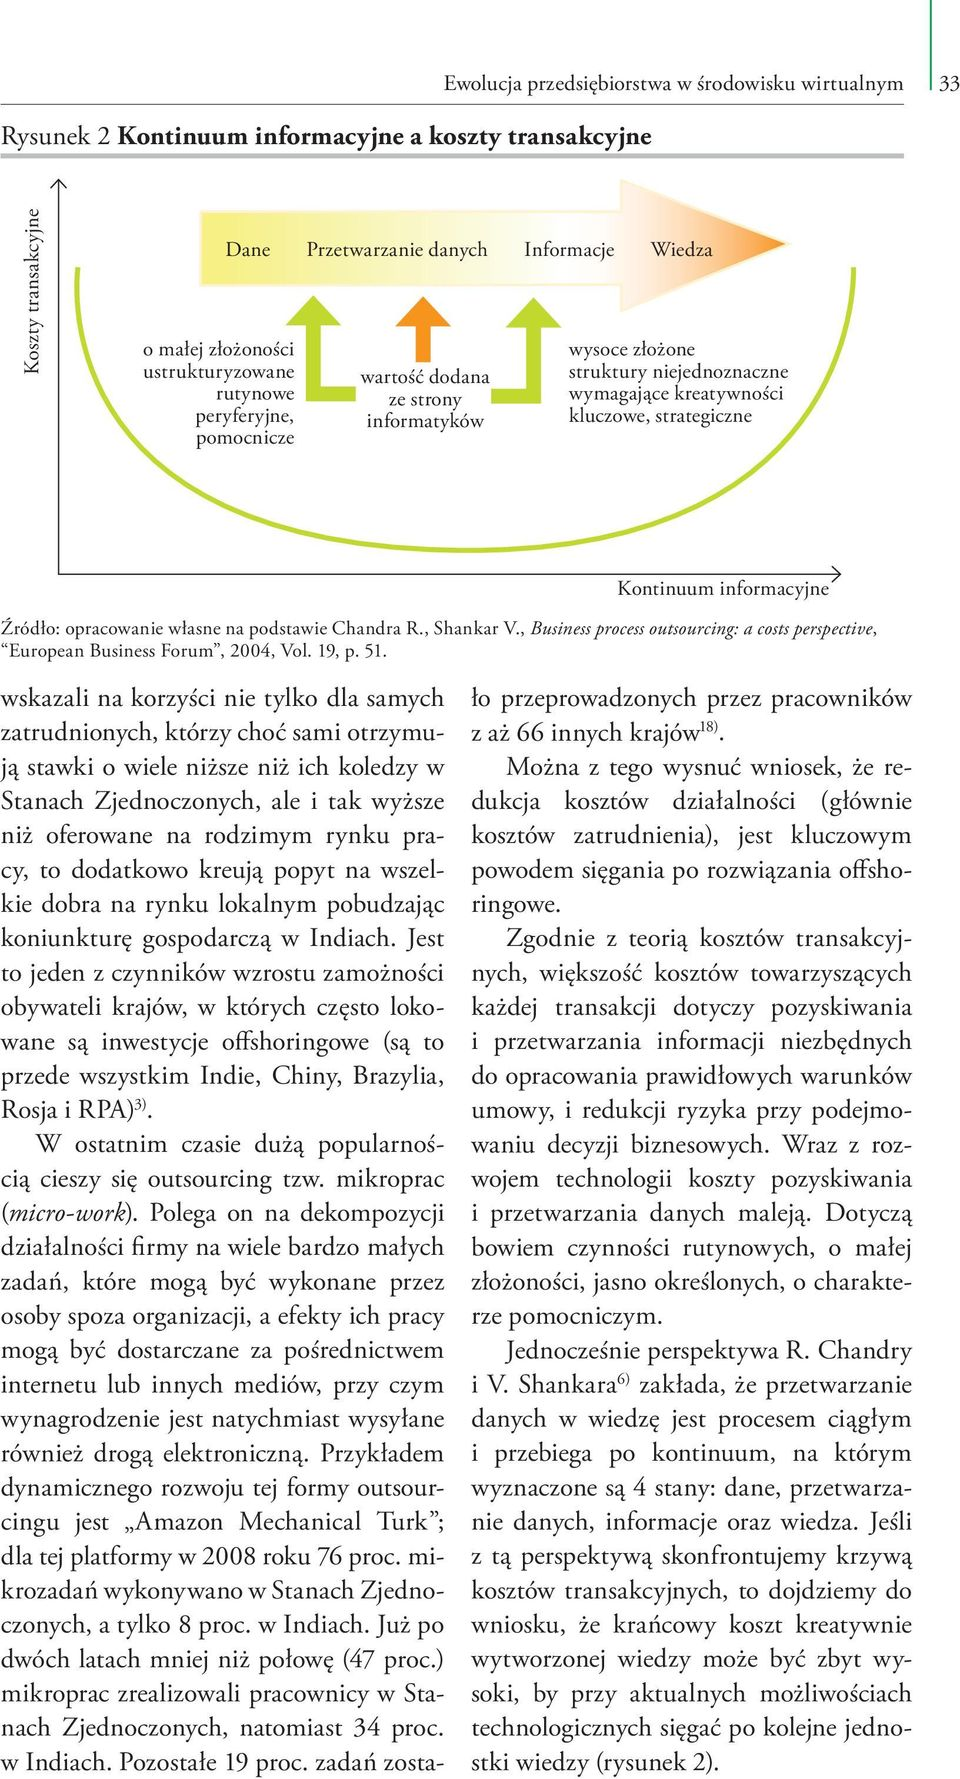 Źródło: opracowanie własne na podstawie Chandra R., Shankar V., Business process outsourcing: a costs perspective, European Business Forum, 2004, Vol. 19, p. 51.